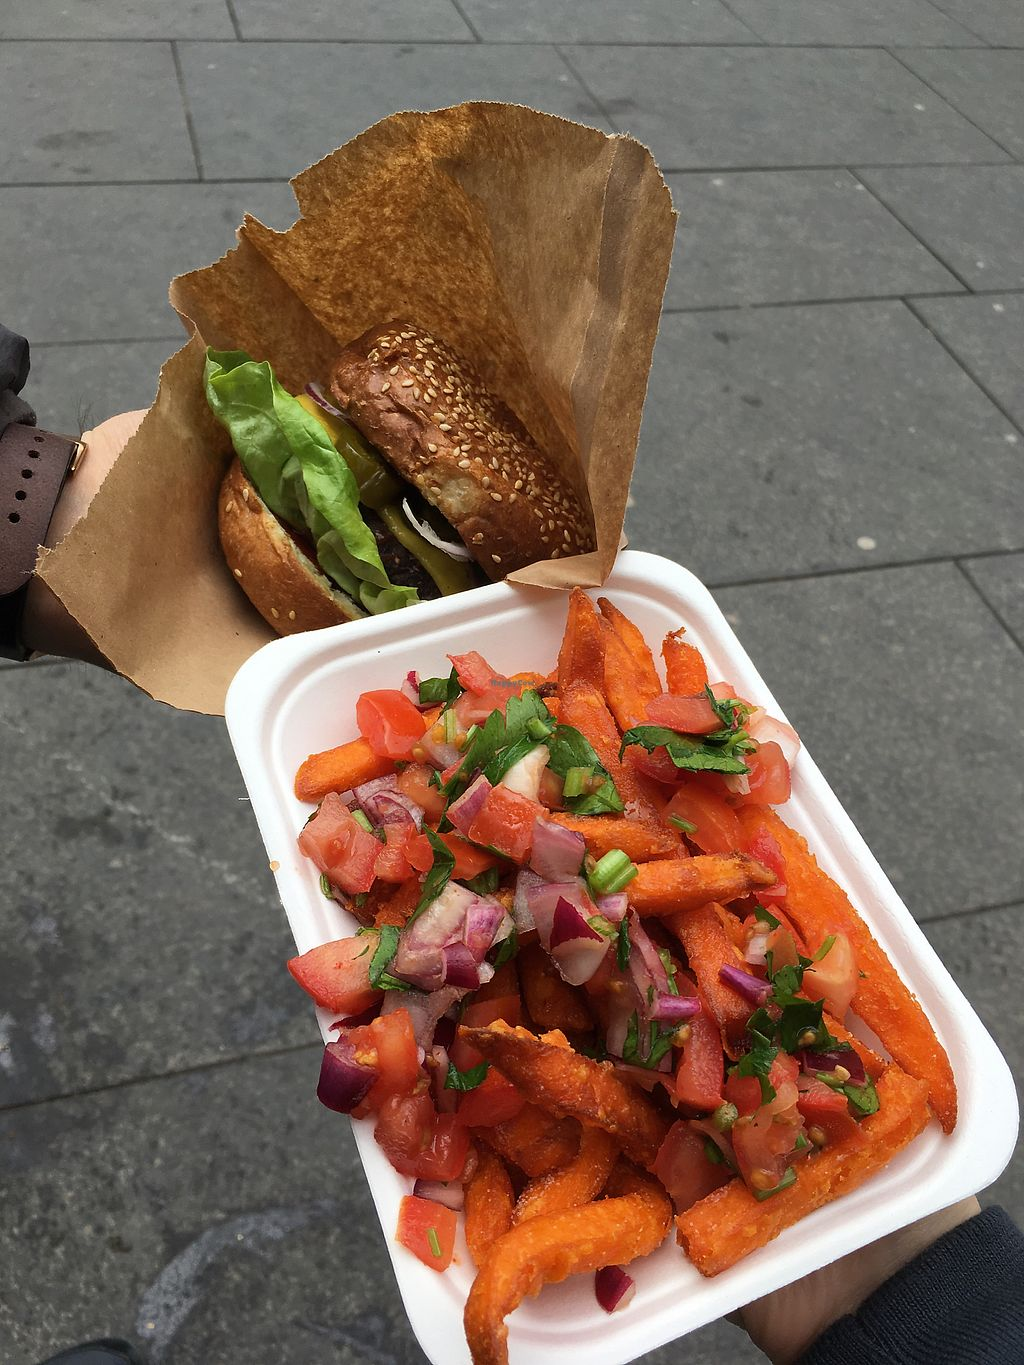 "Photo of Freddy & Hicks  by <a href=""/members/profile/RhonaM"">RhonaM</a> <br/>Sweet potato fries with salsa and BBQ burger - yum! <br/> March 30, 2018  - <a href='/contact/abuse/image/90795/378489'>Report</a>"